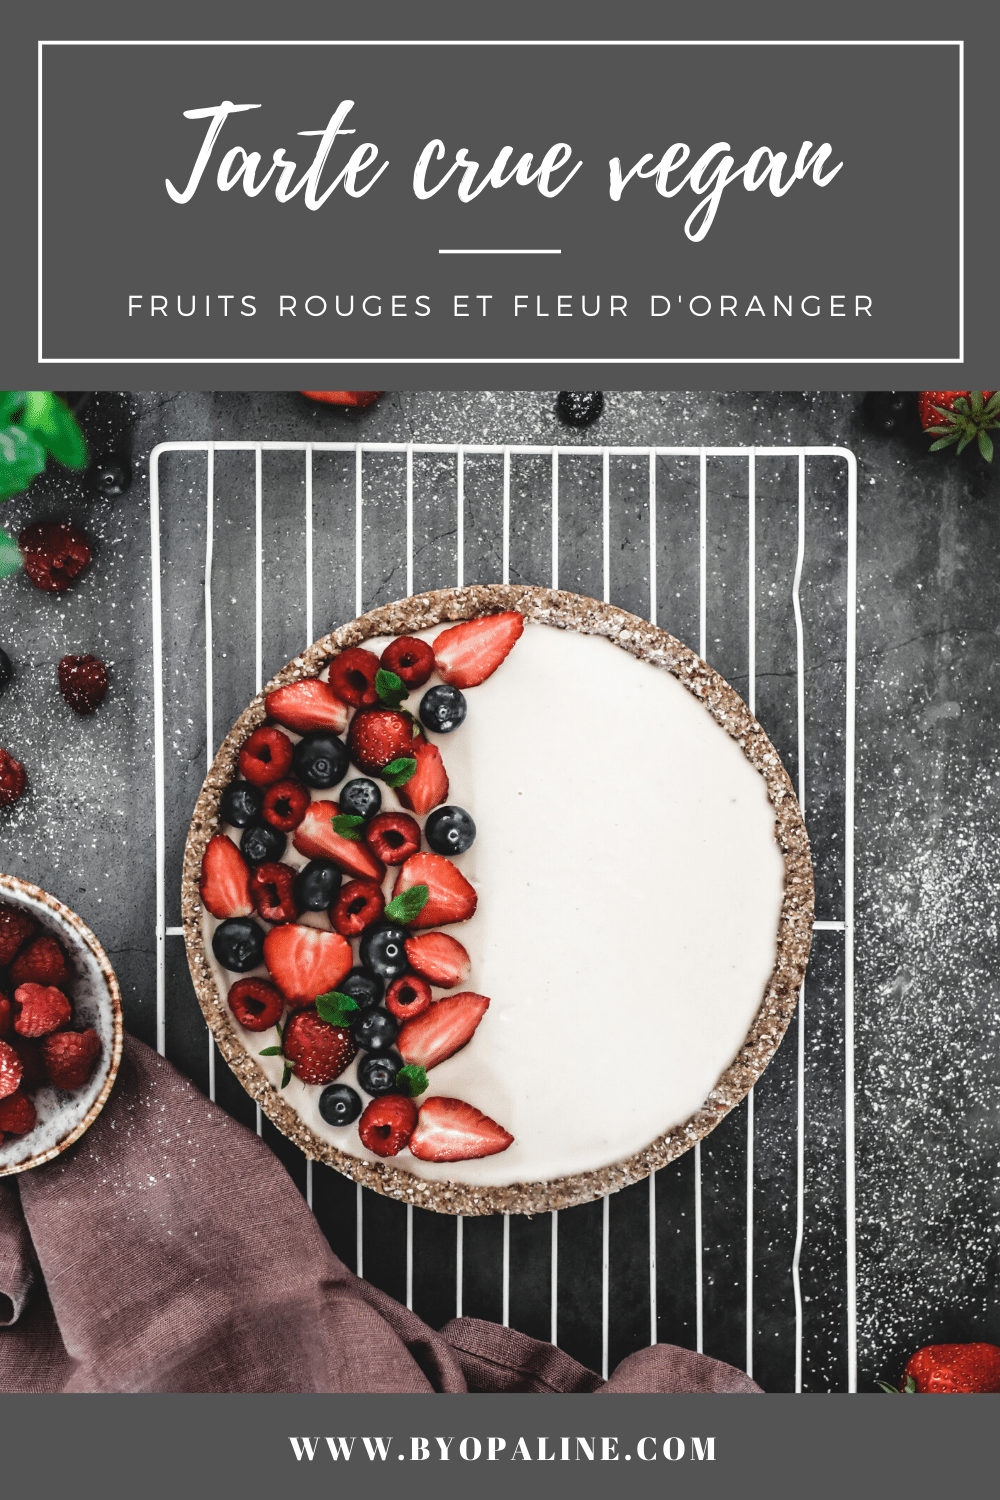 Tarte crue vegan fruits rouges fleur d'oranger Pinterest